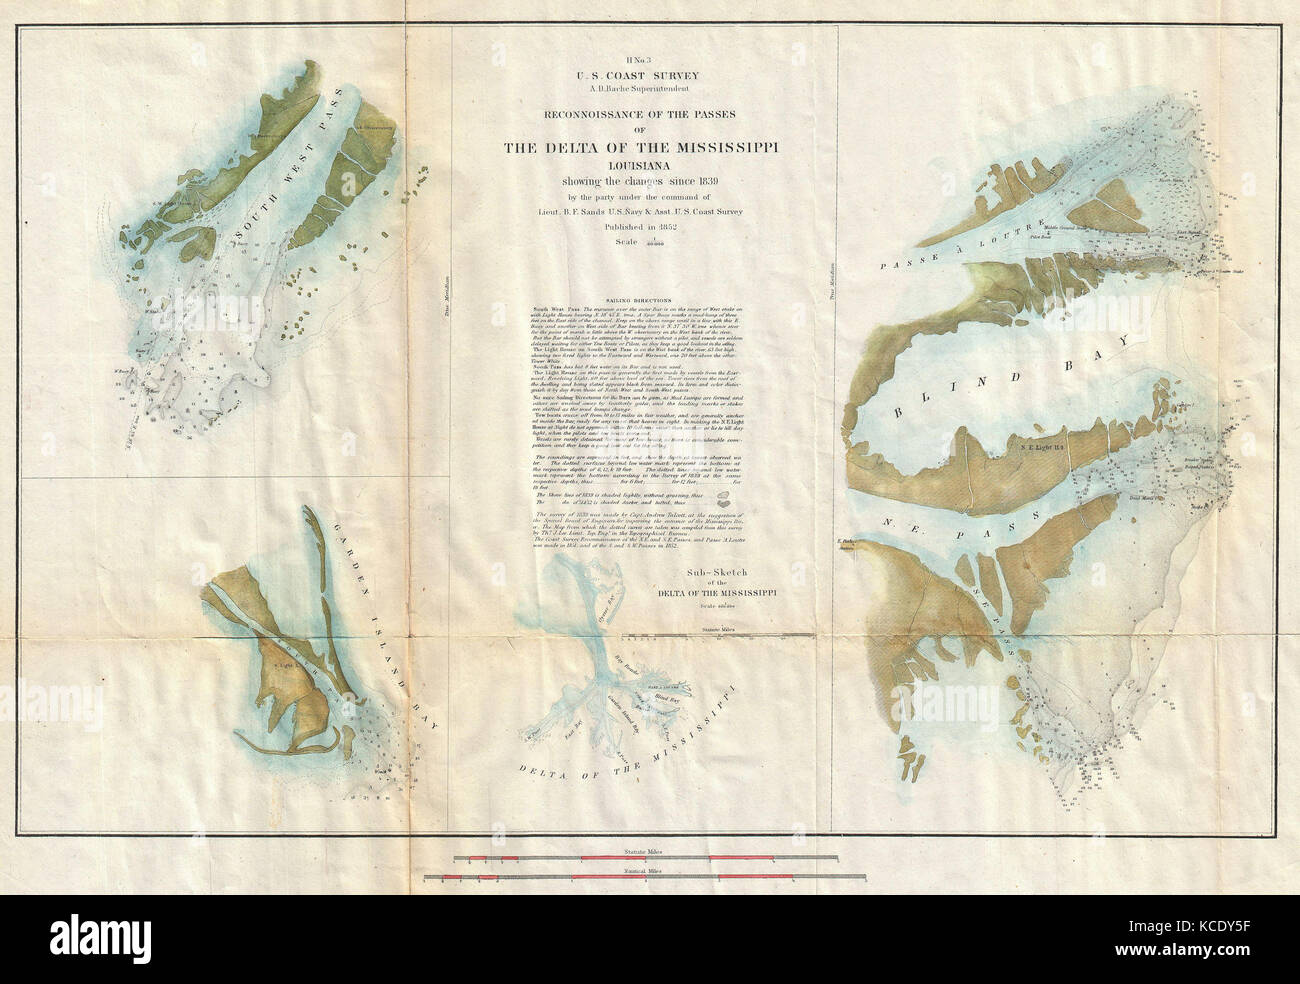 US Coast Survey Map Of The Mississippi River Delta Stock - Mississippi river delta map